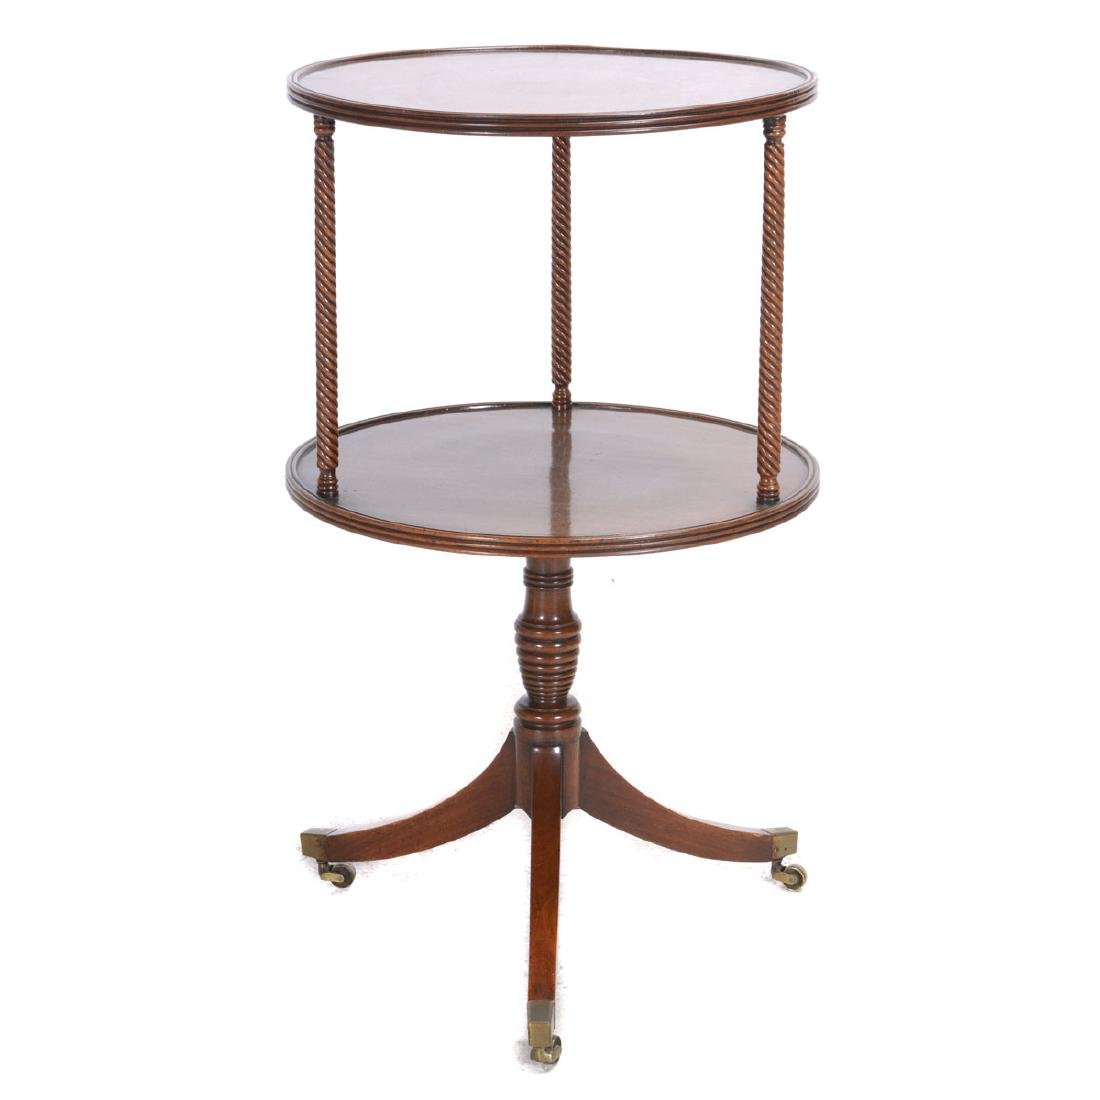 Late George III Two Tiered Tripod Accent Table